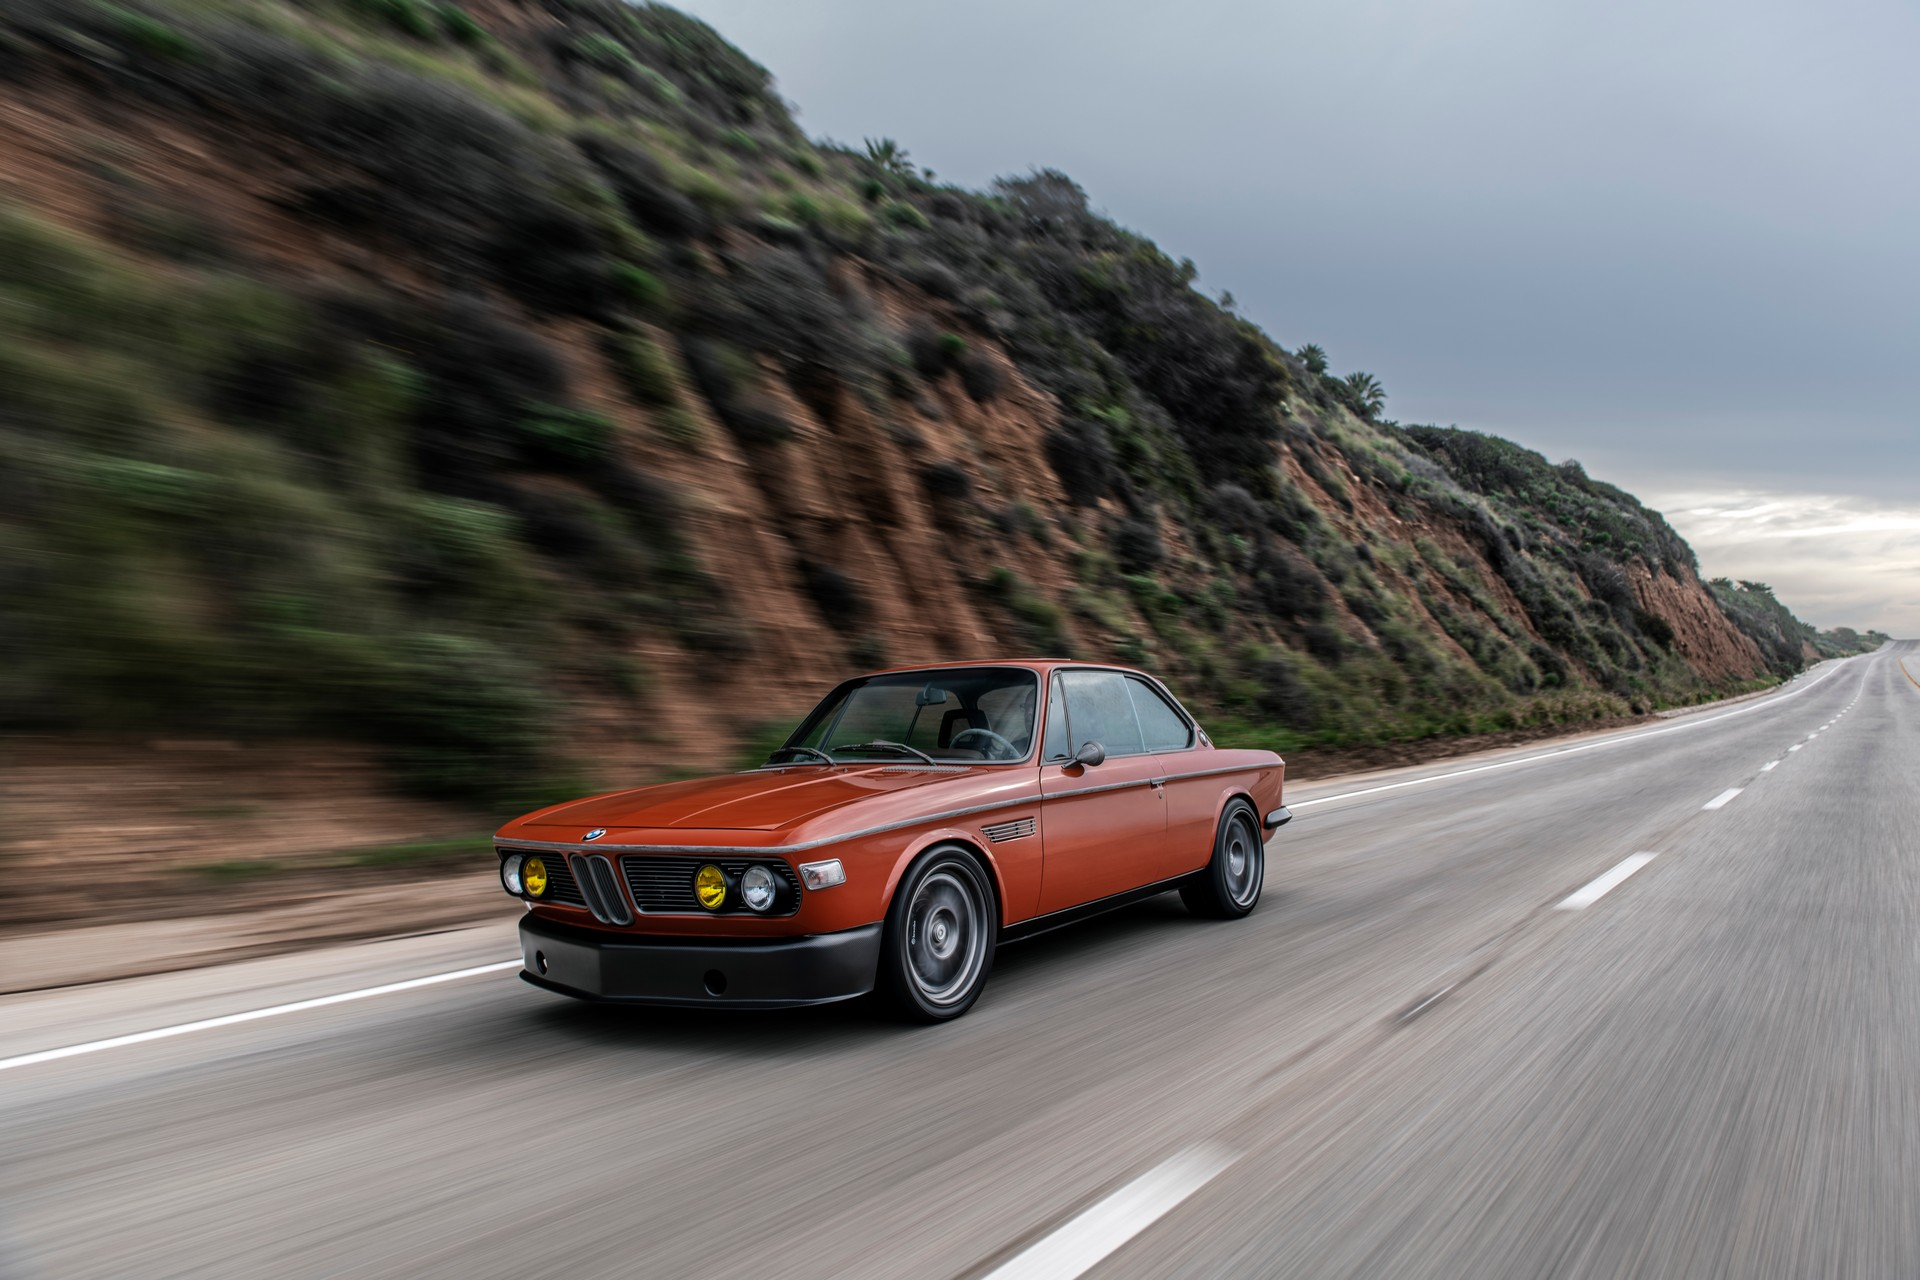 SPEEDKORE-1974-BMW-3.0-CS-3